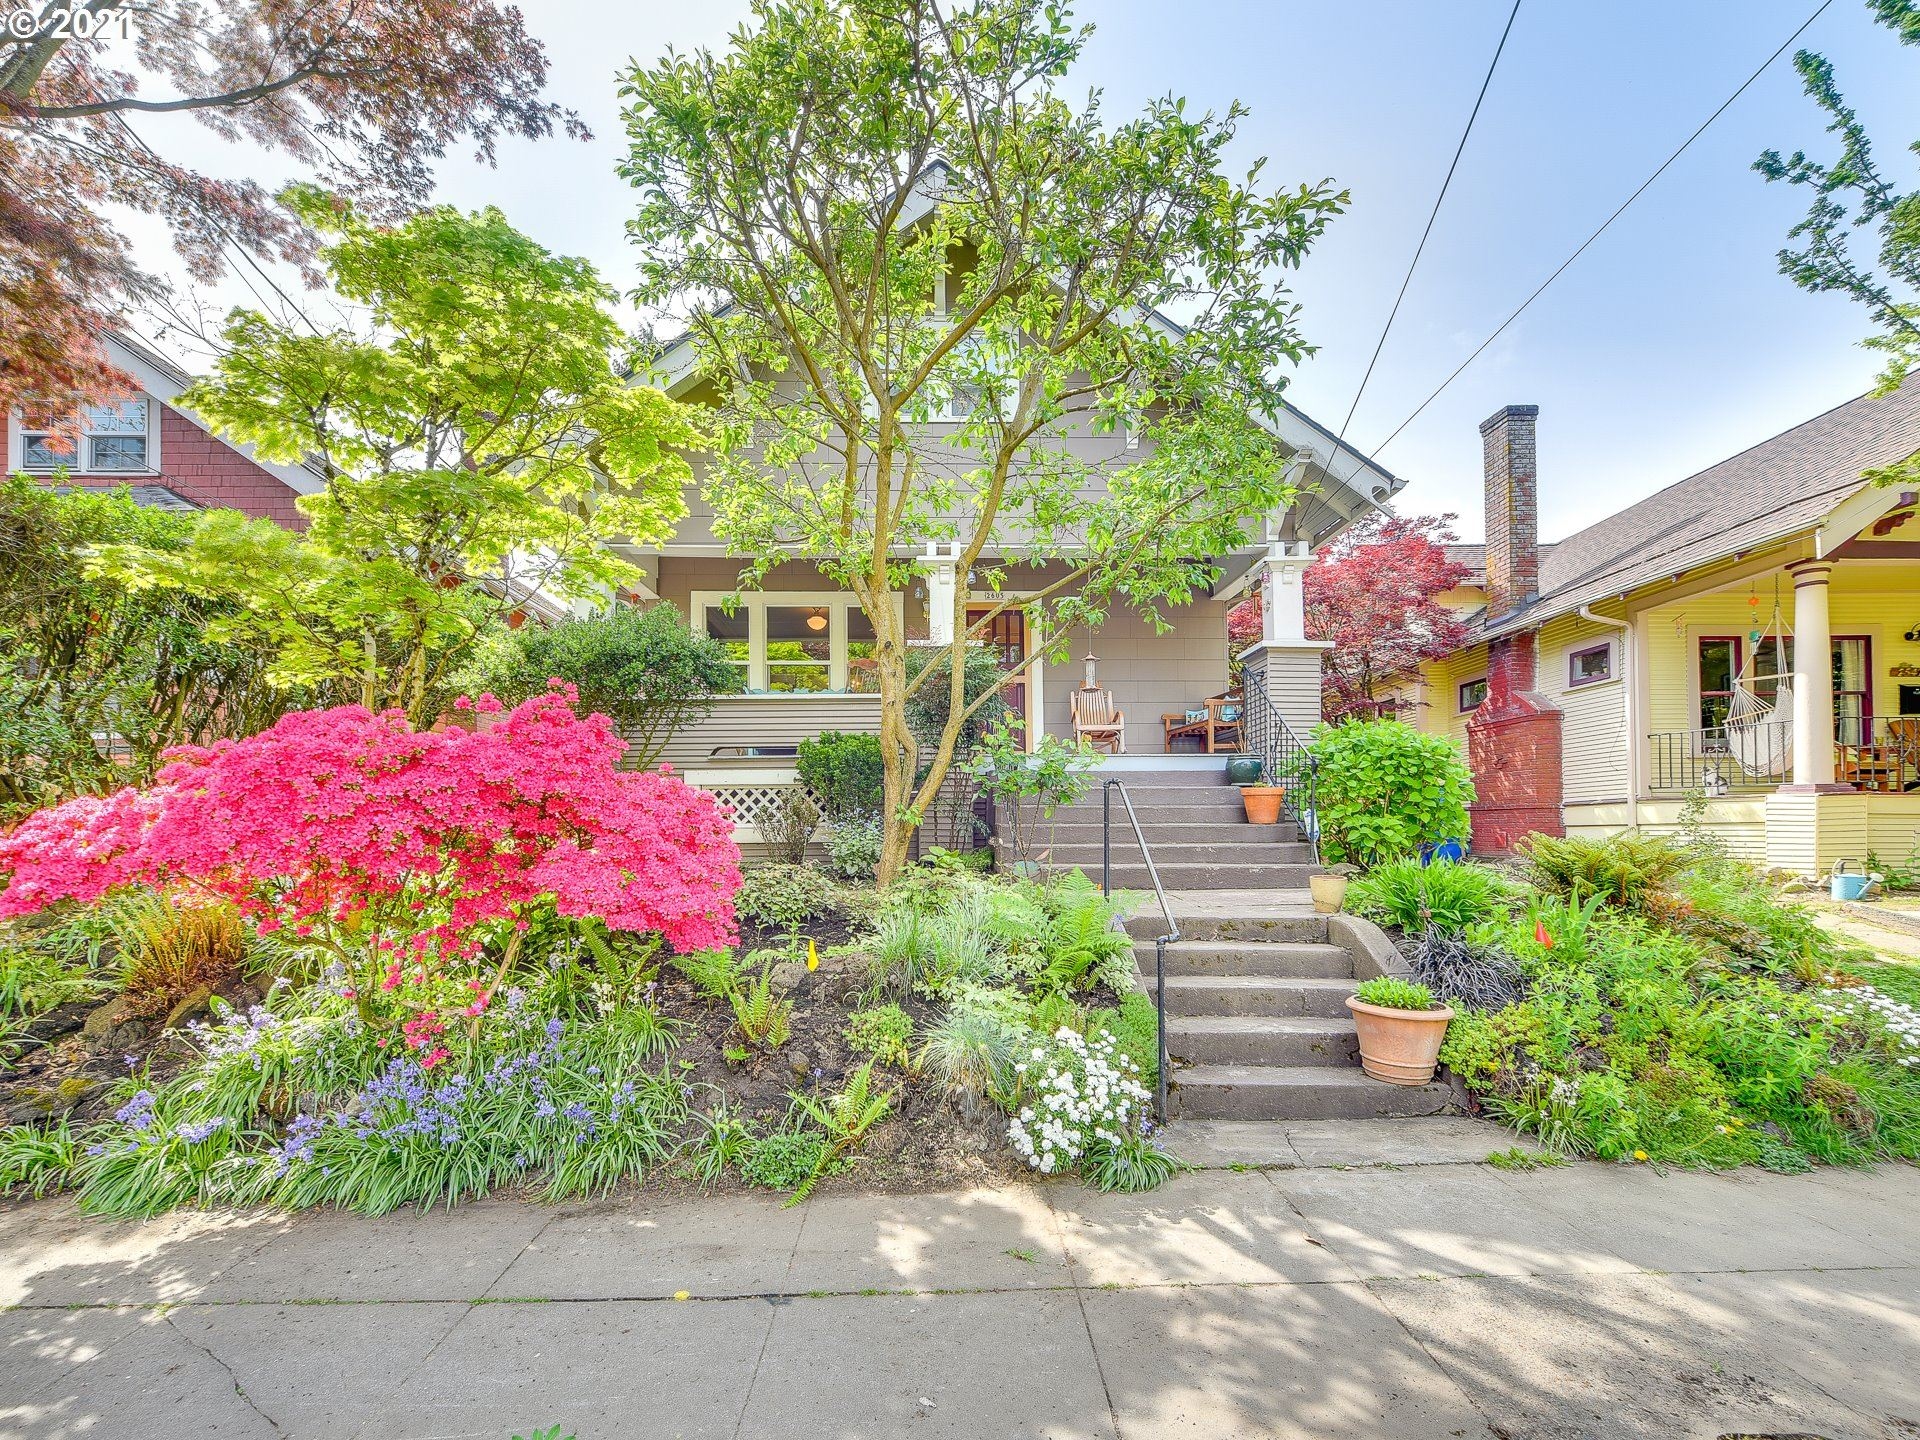 2605 SE 34TH AVE, Portland, OR 97202 - MLS#: 21632036